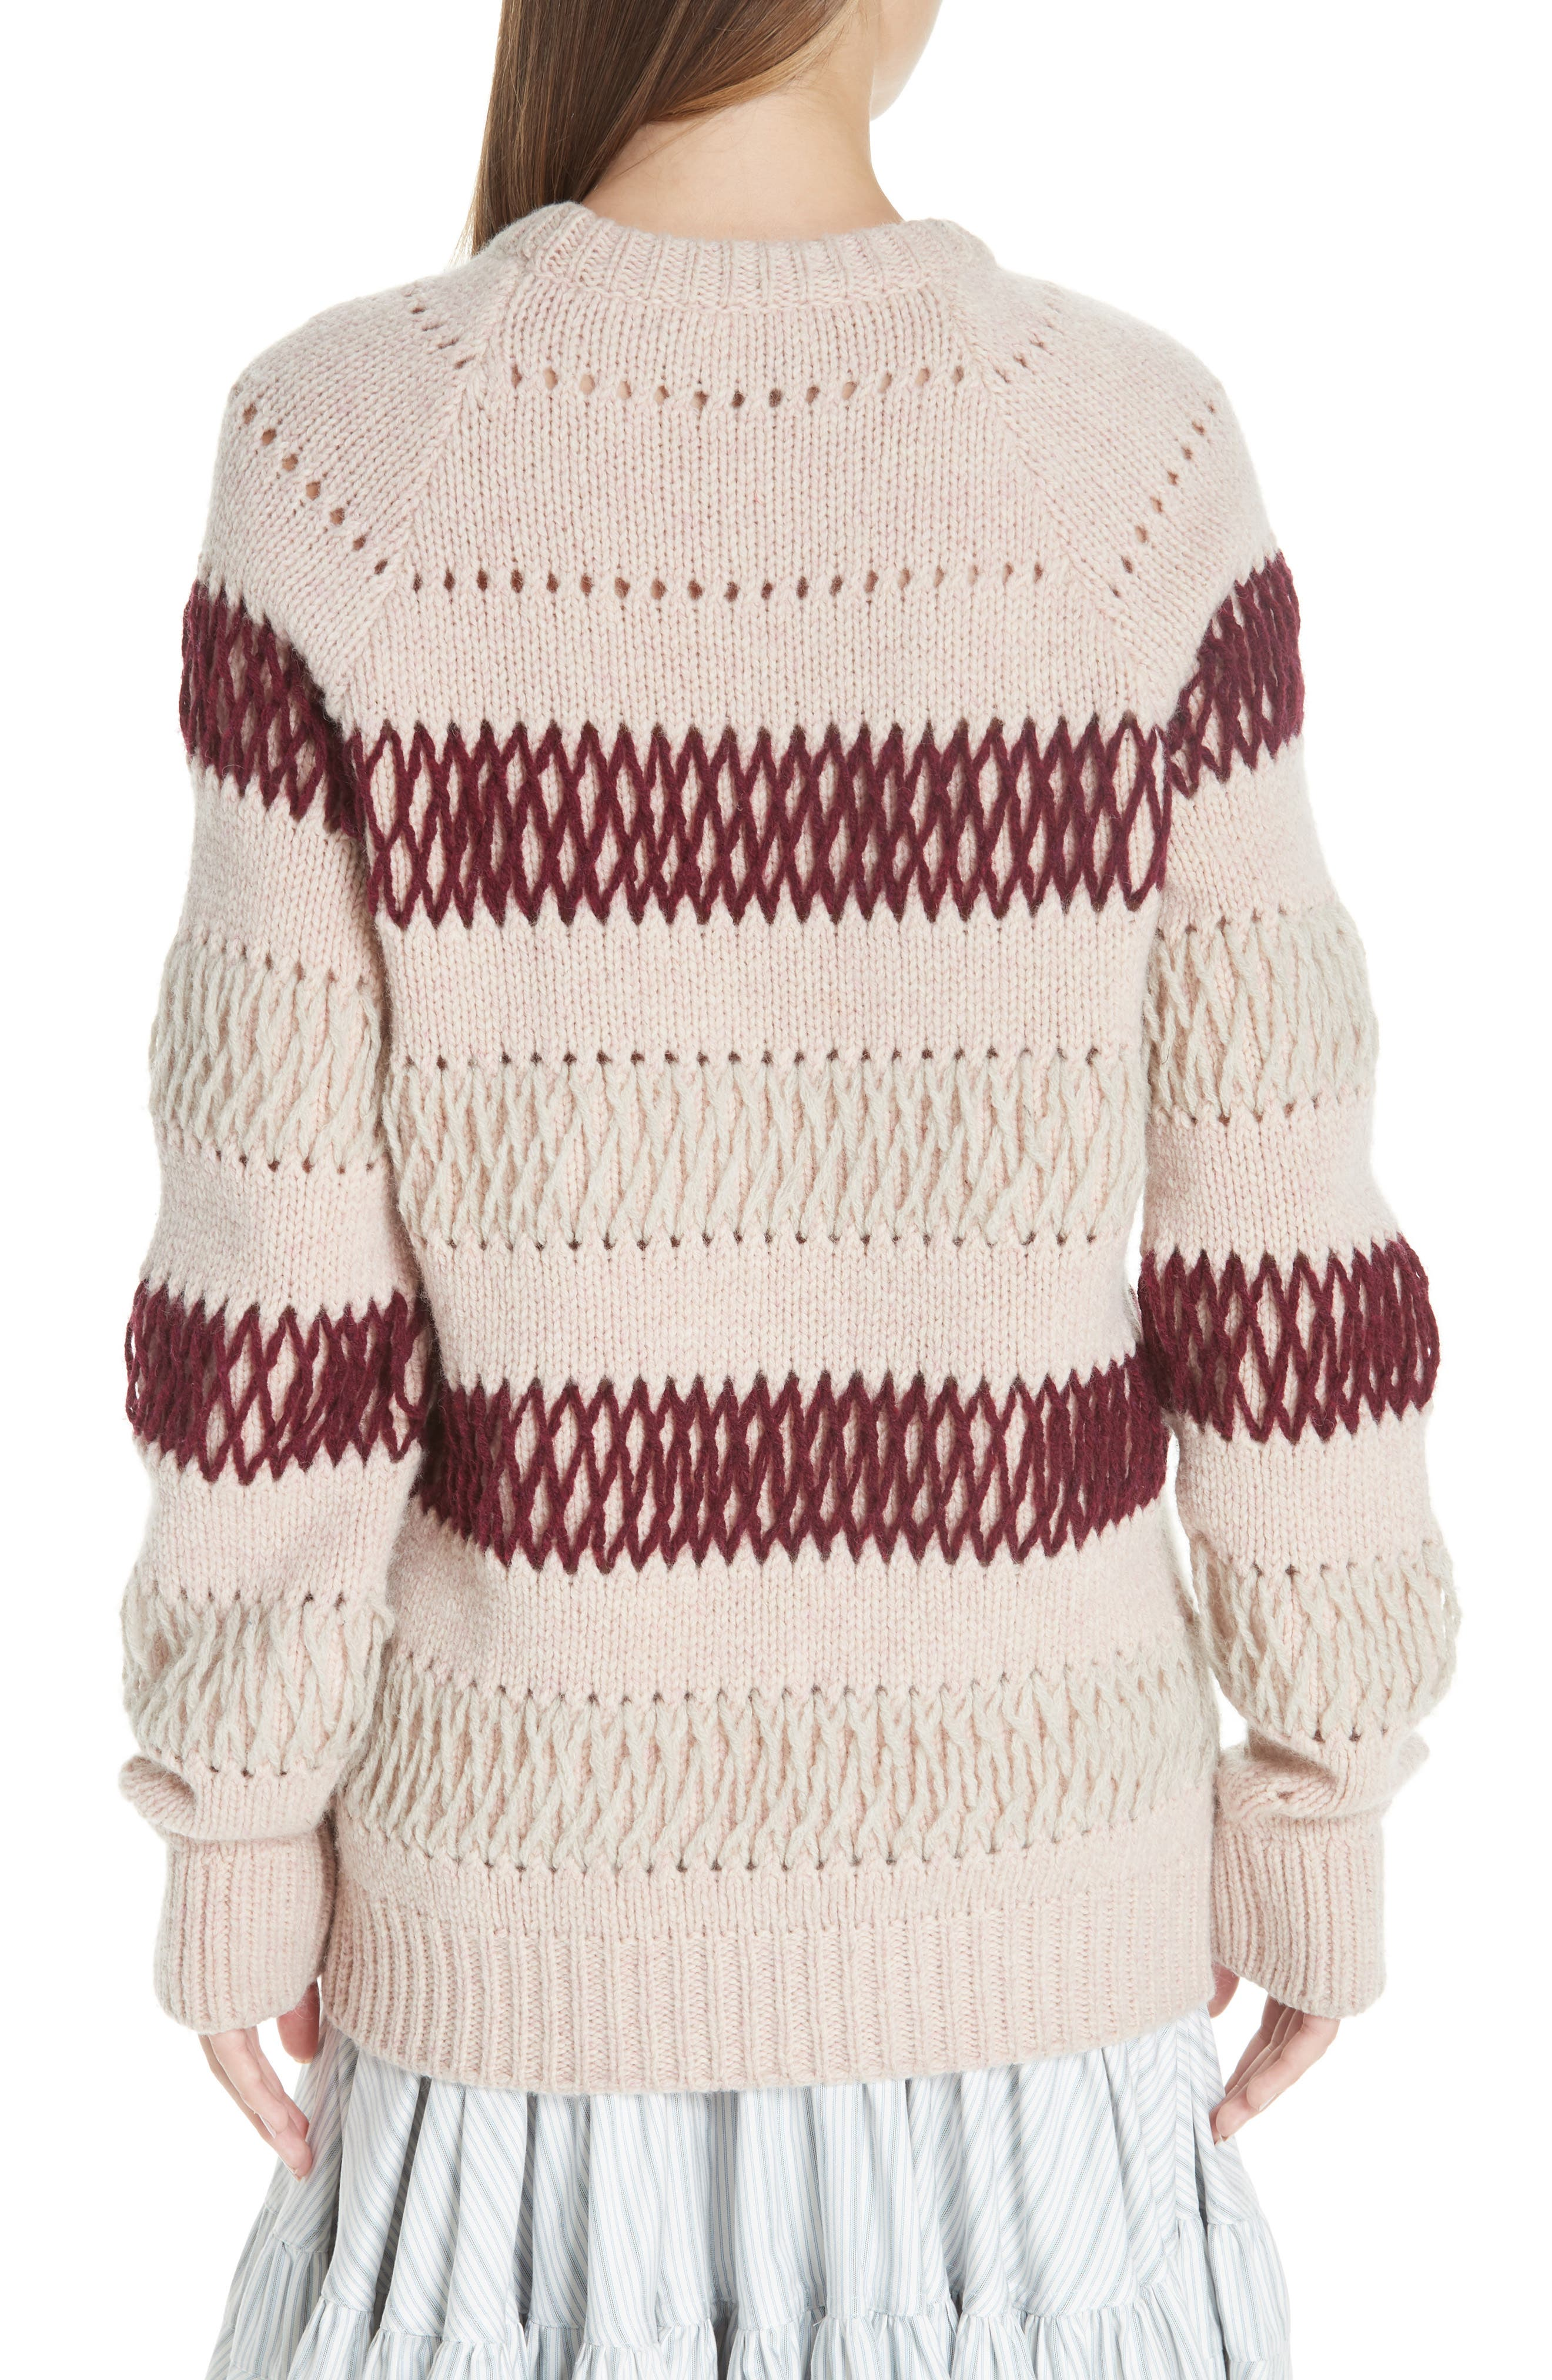 Embroidered Stripe Wool Sweater,                             Alternate thumbnail 2, color,                             PALE PINK BURGUNDY